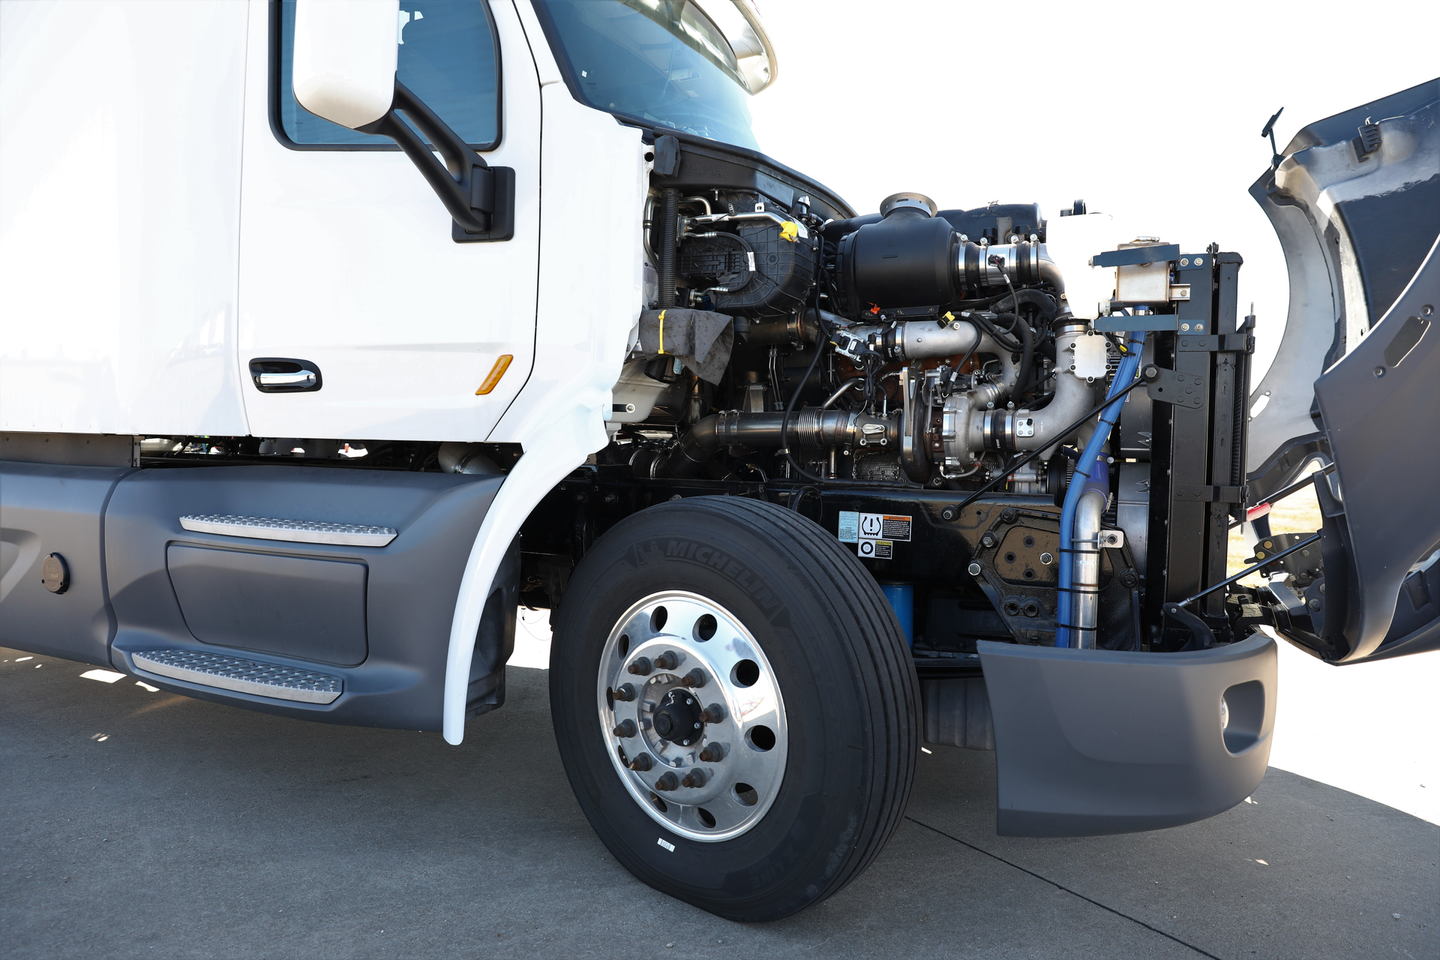 Achates Power's 10.6L heavy-duty diesel engine in a Peterbilt 579 truck which will be driven in fleet service in California later in 2021.